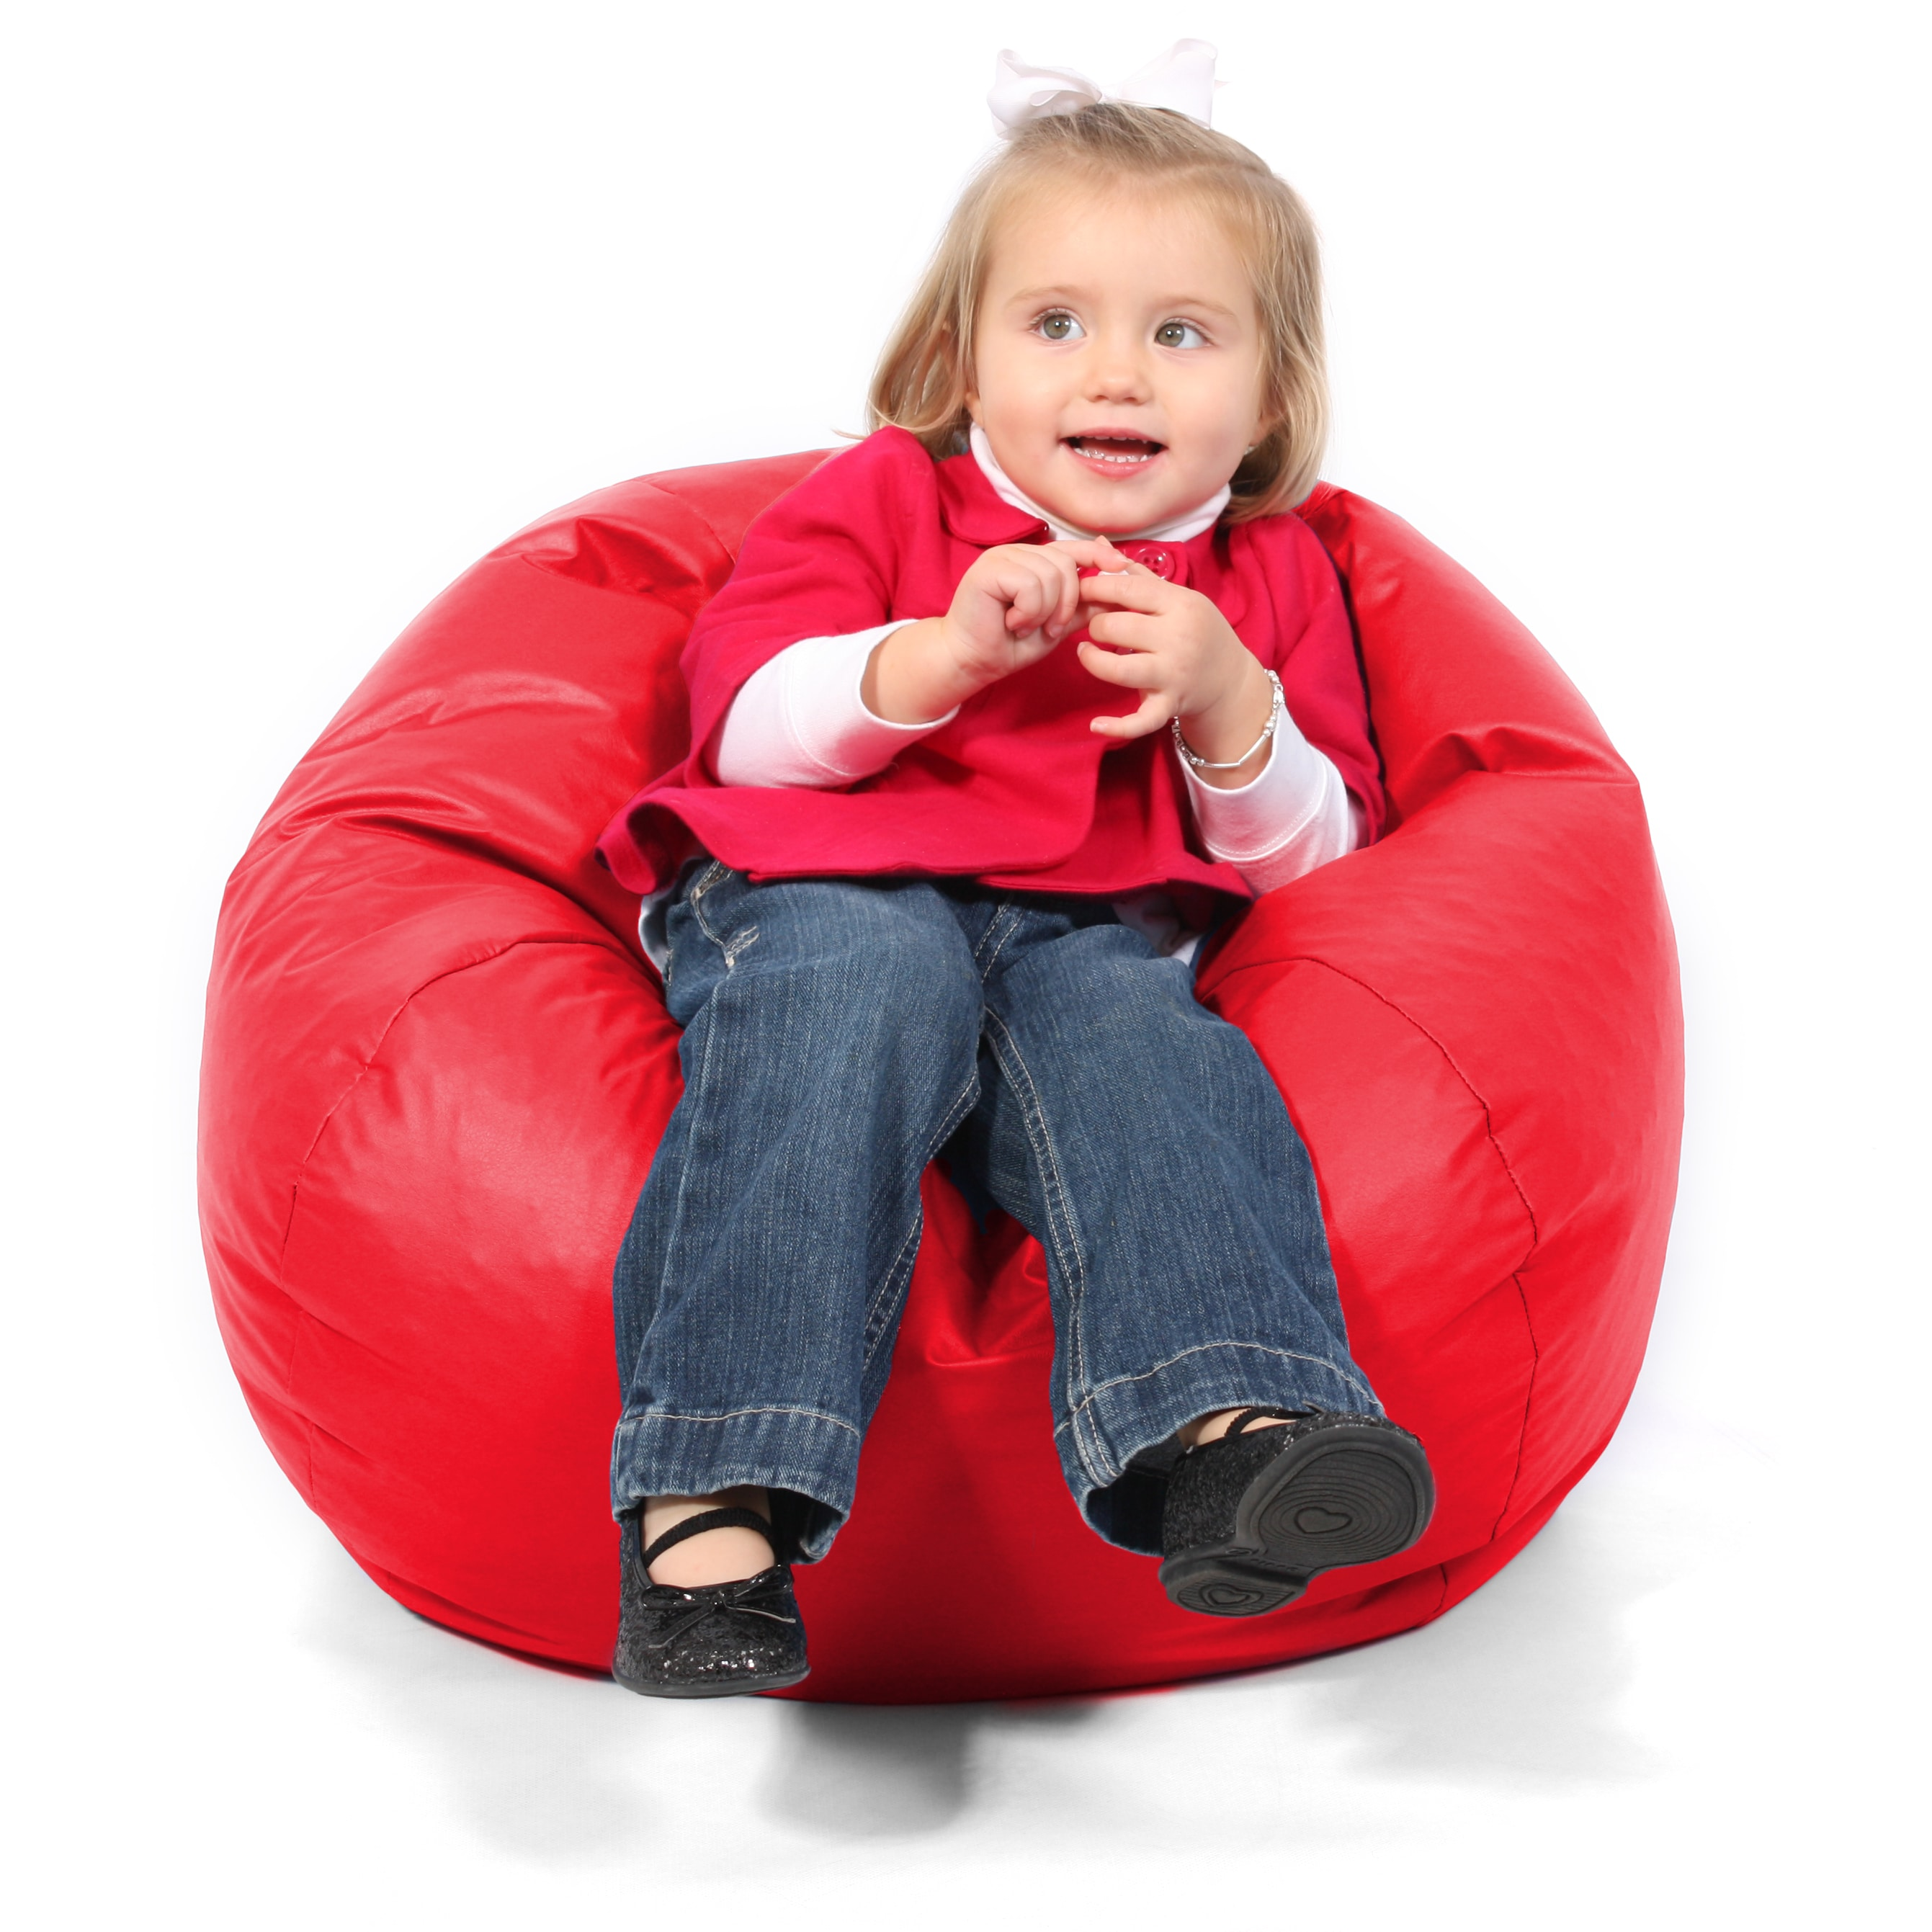 Beansack Kids Red Vinyl Bean Bag Free Shipping On Orders